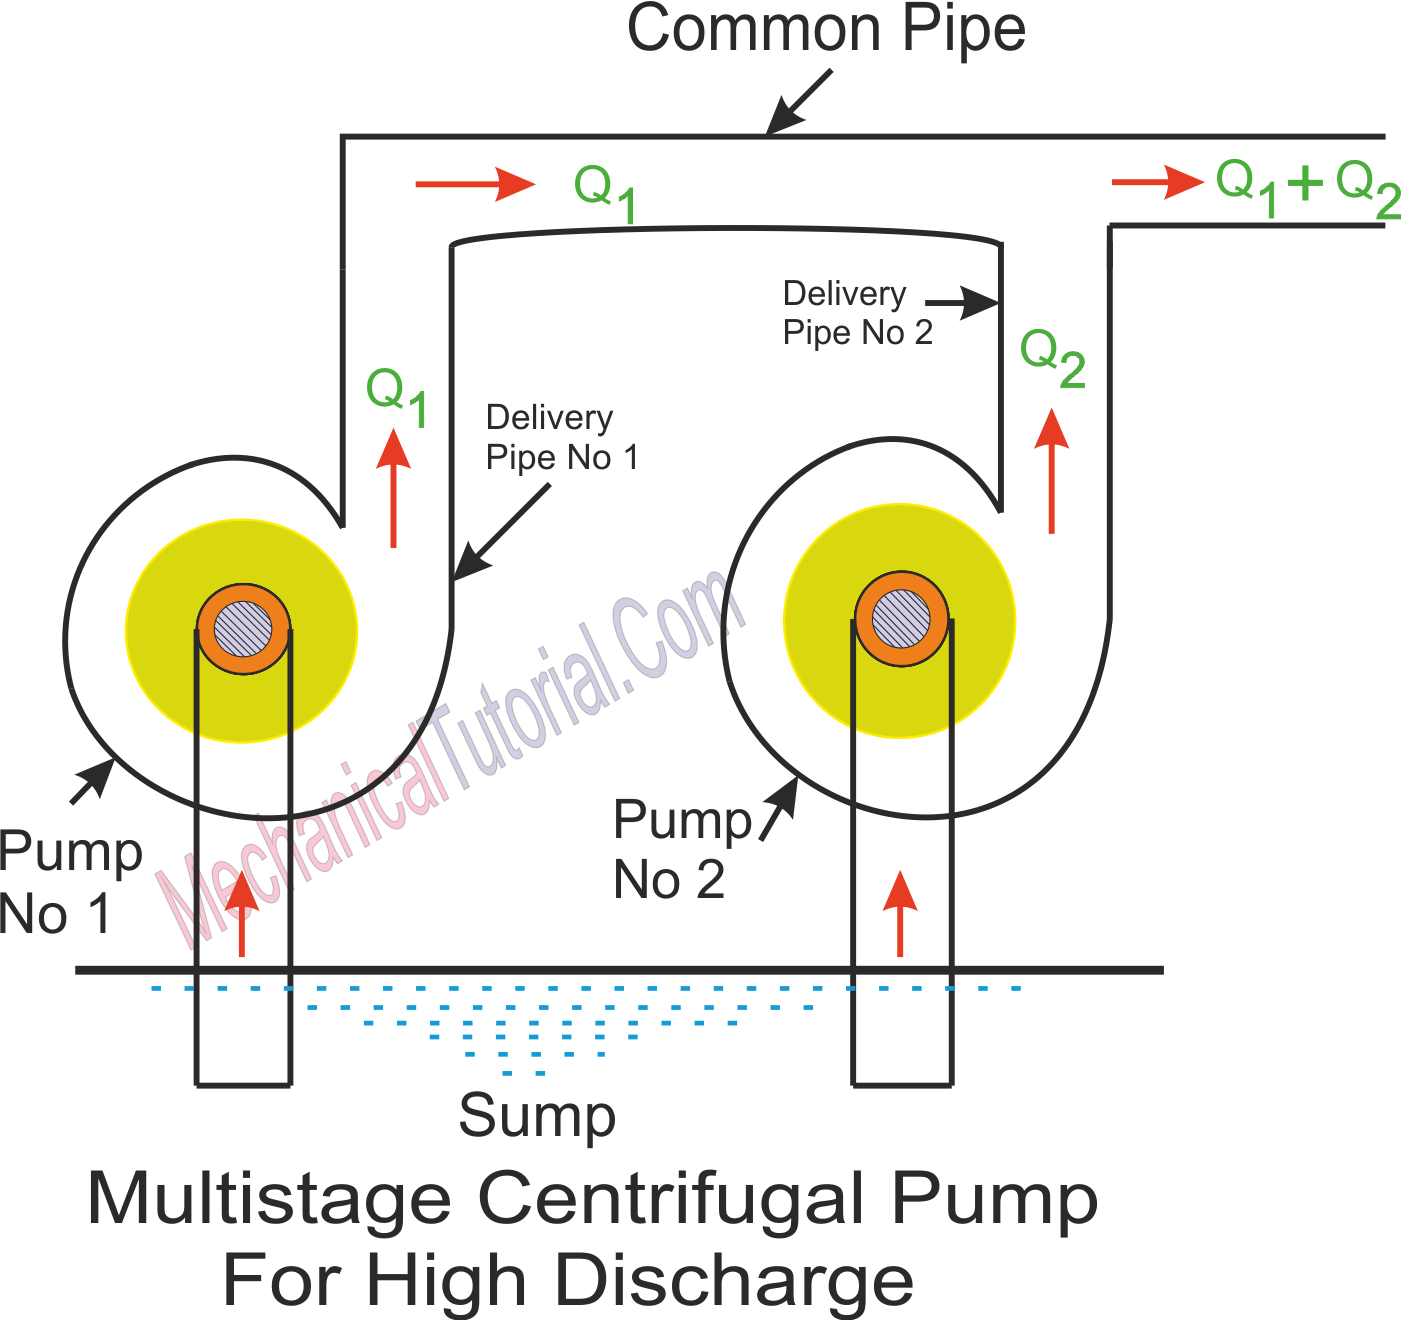 Diagram of multistage centrifugal pump for high discharge